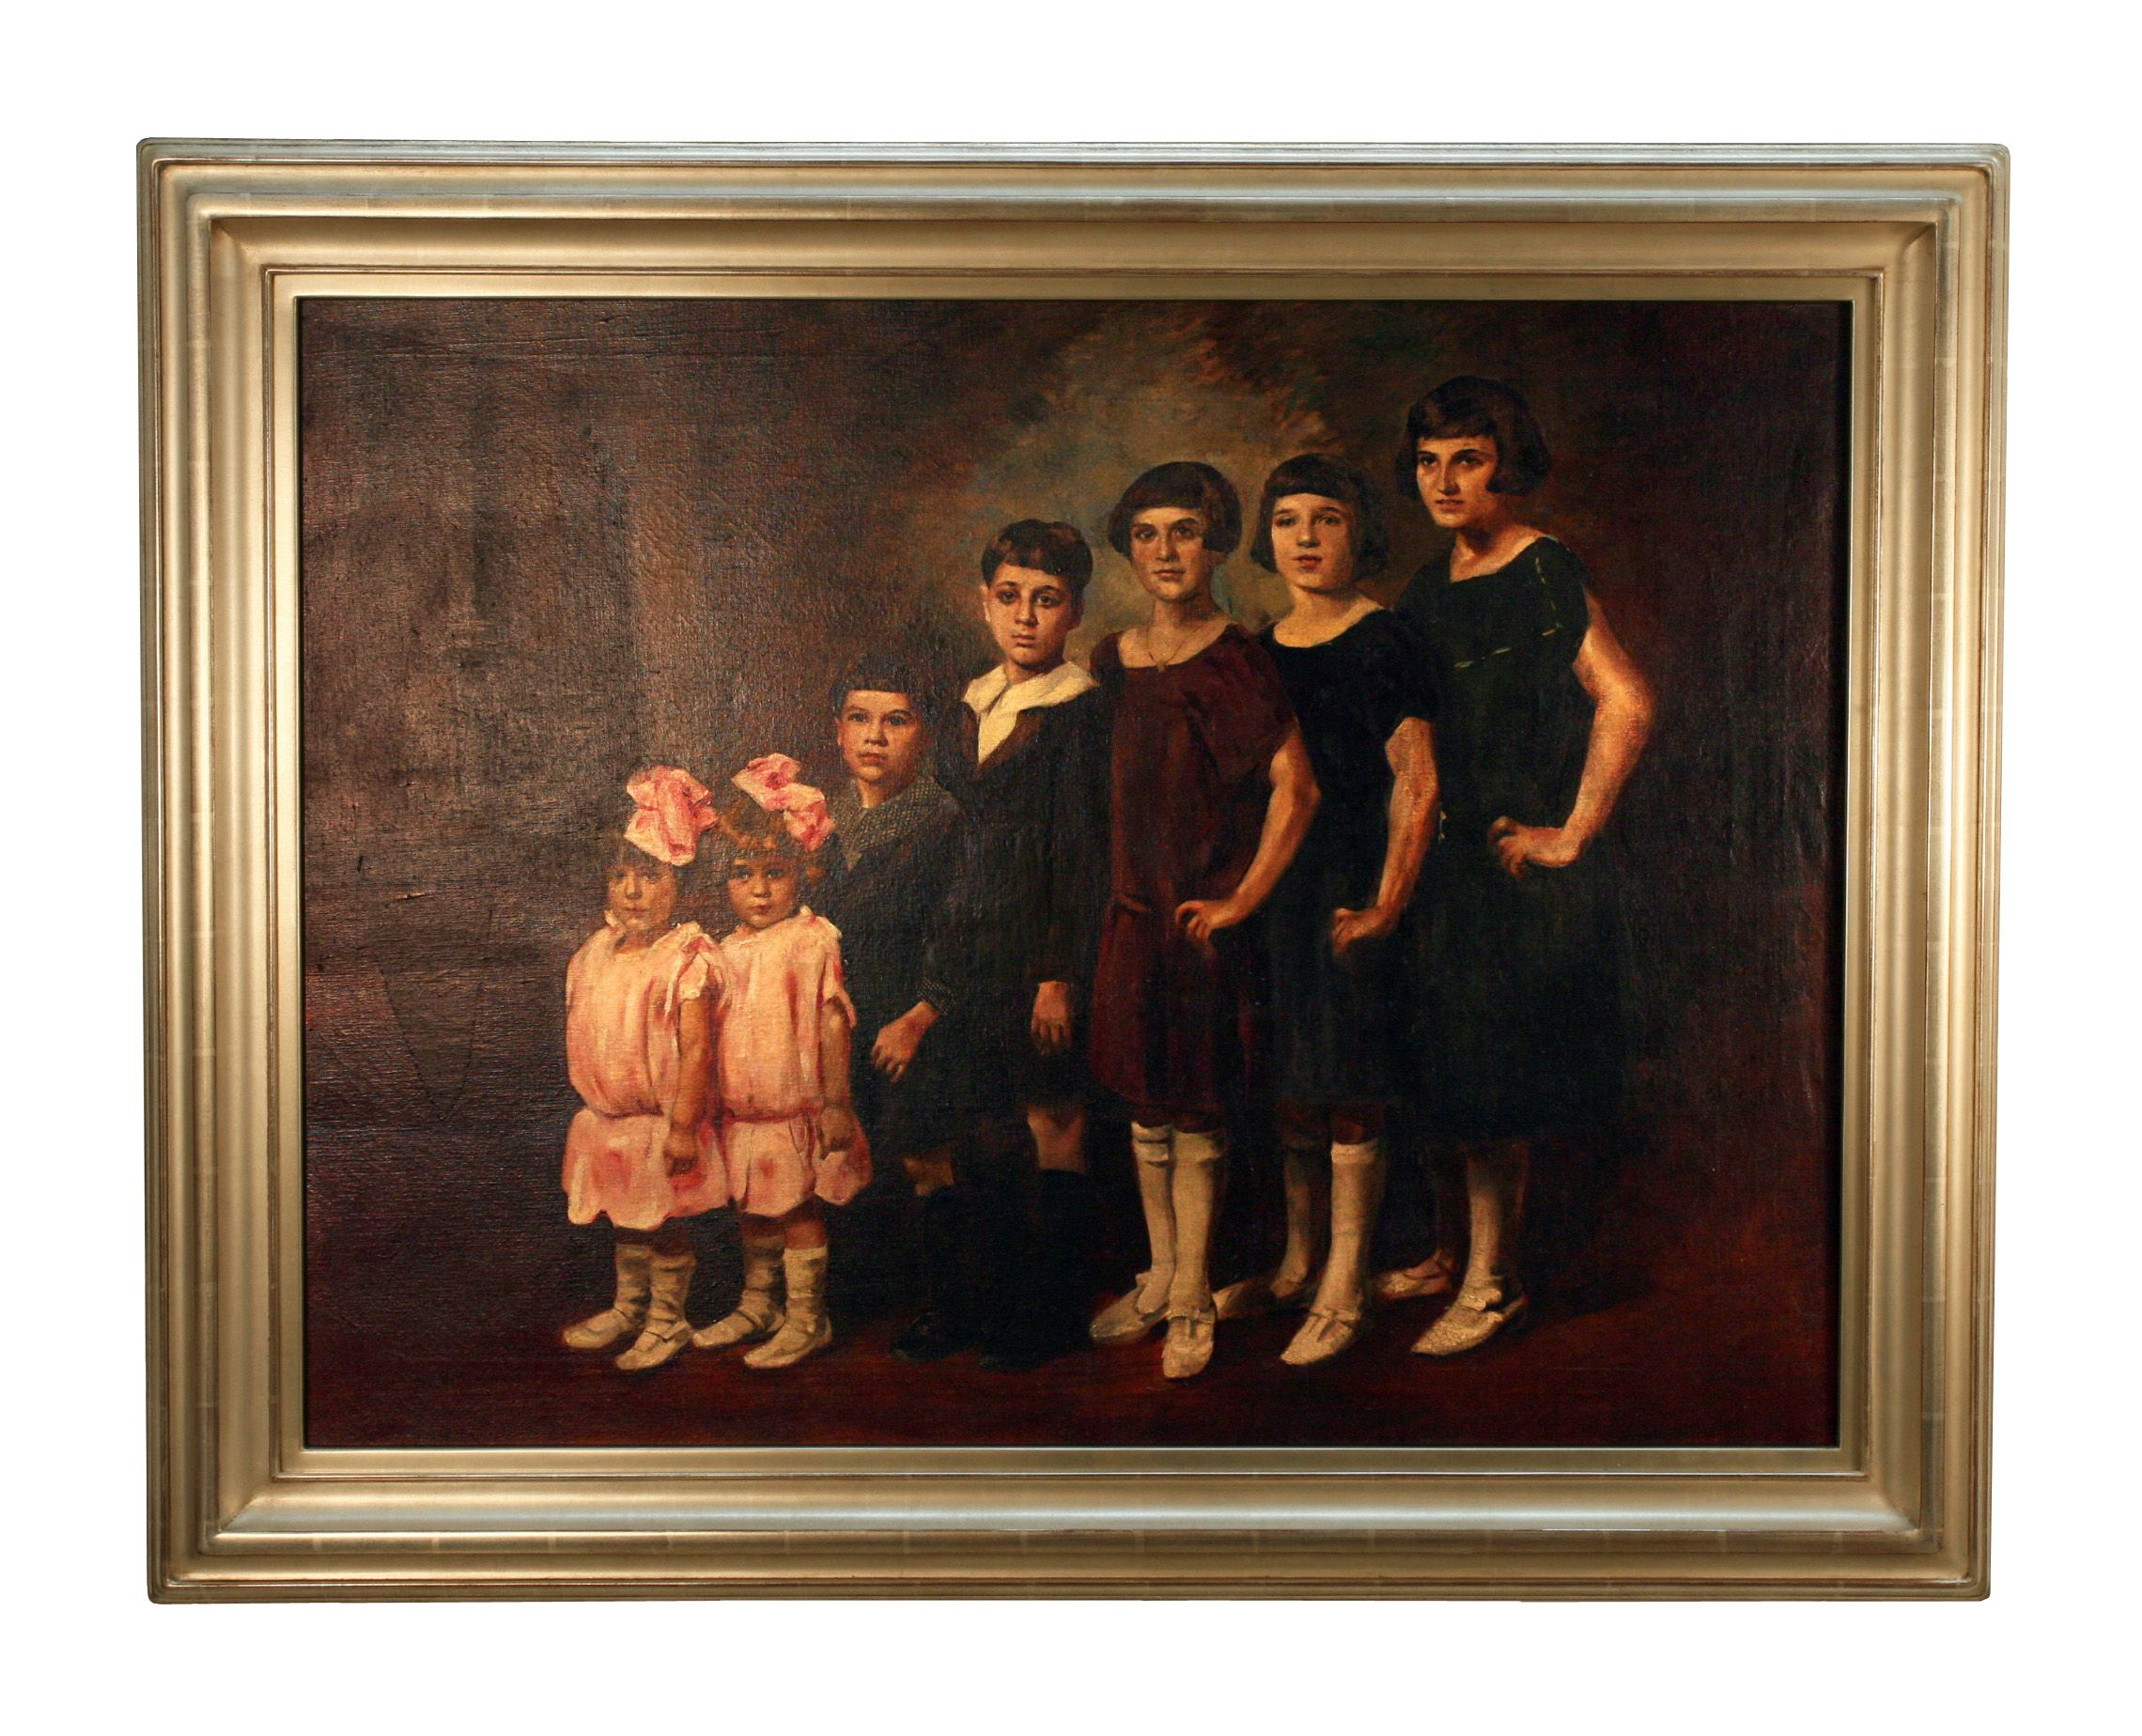 A Family Heirloom Framed By Gk Framing Httpgkframingcom